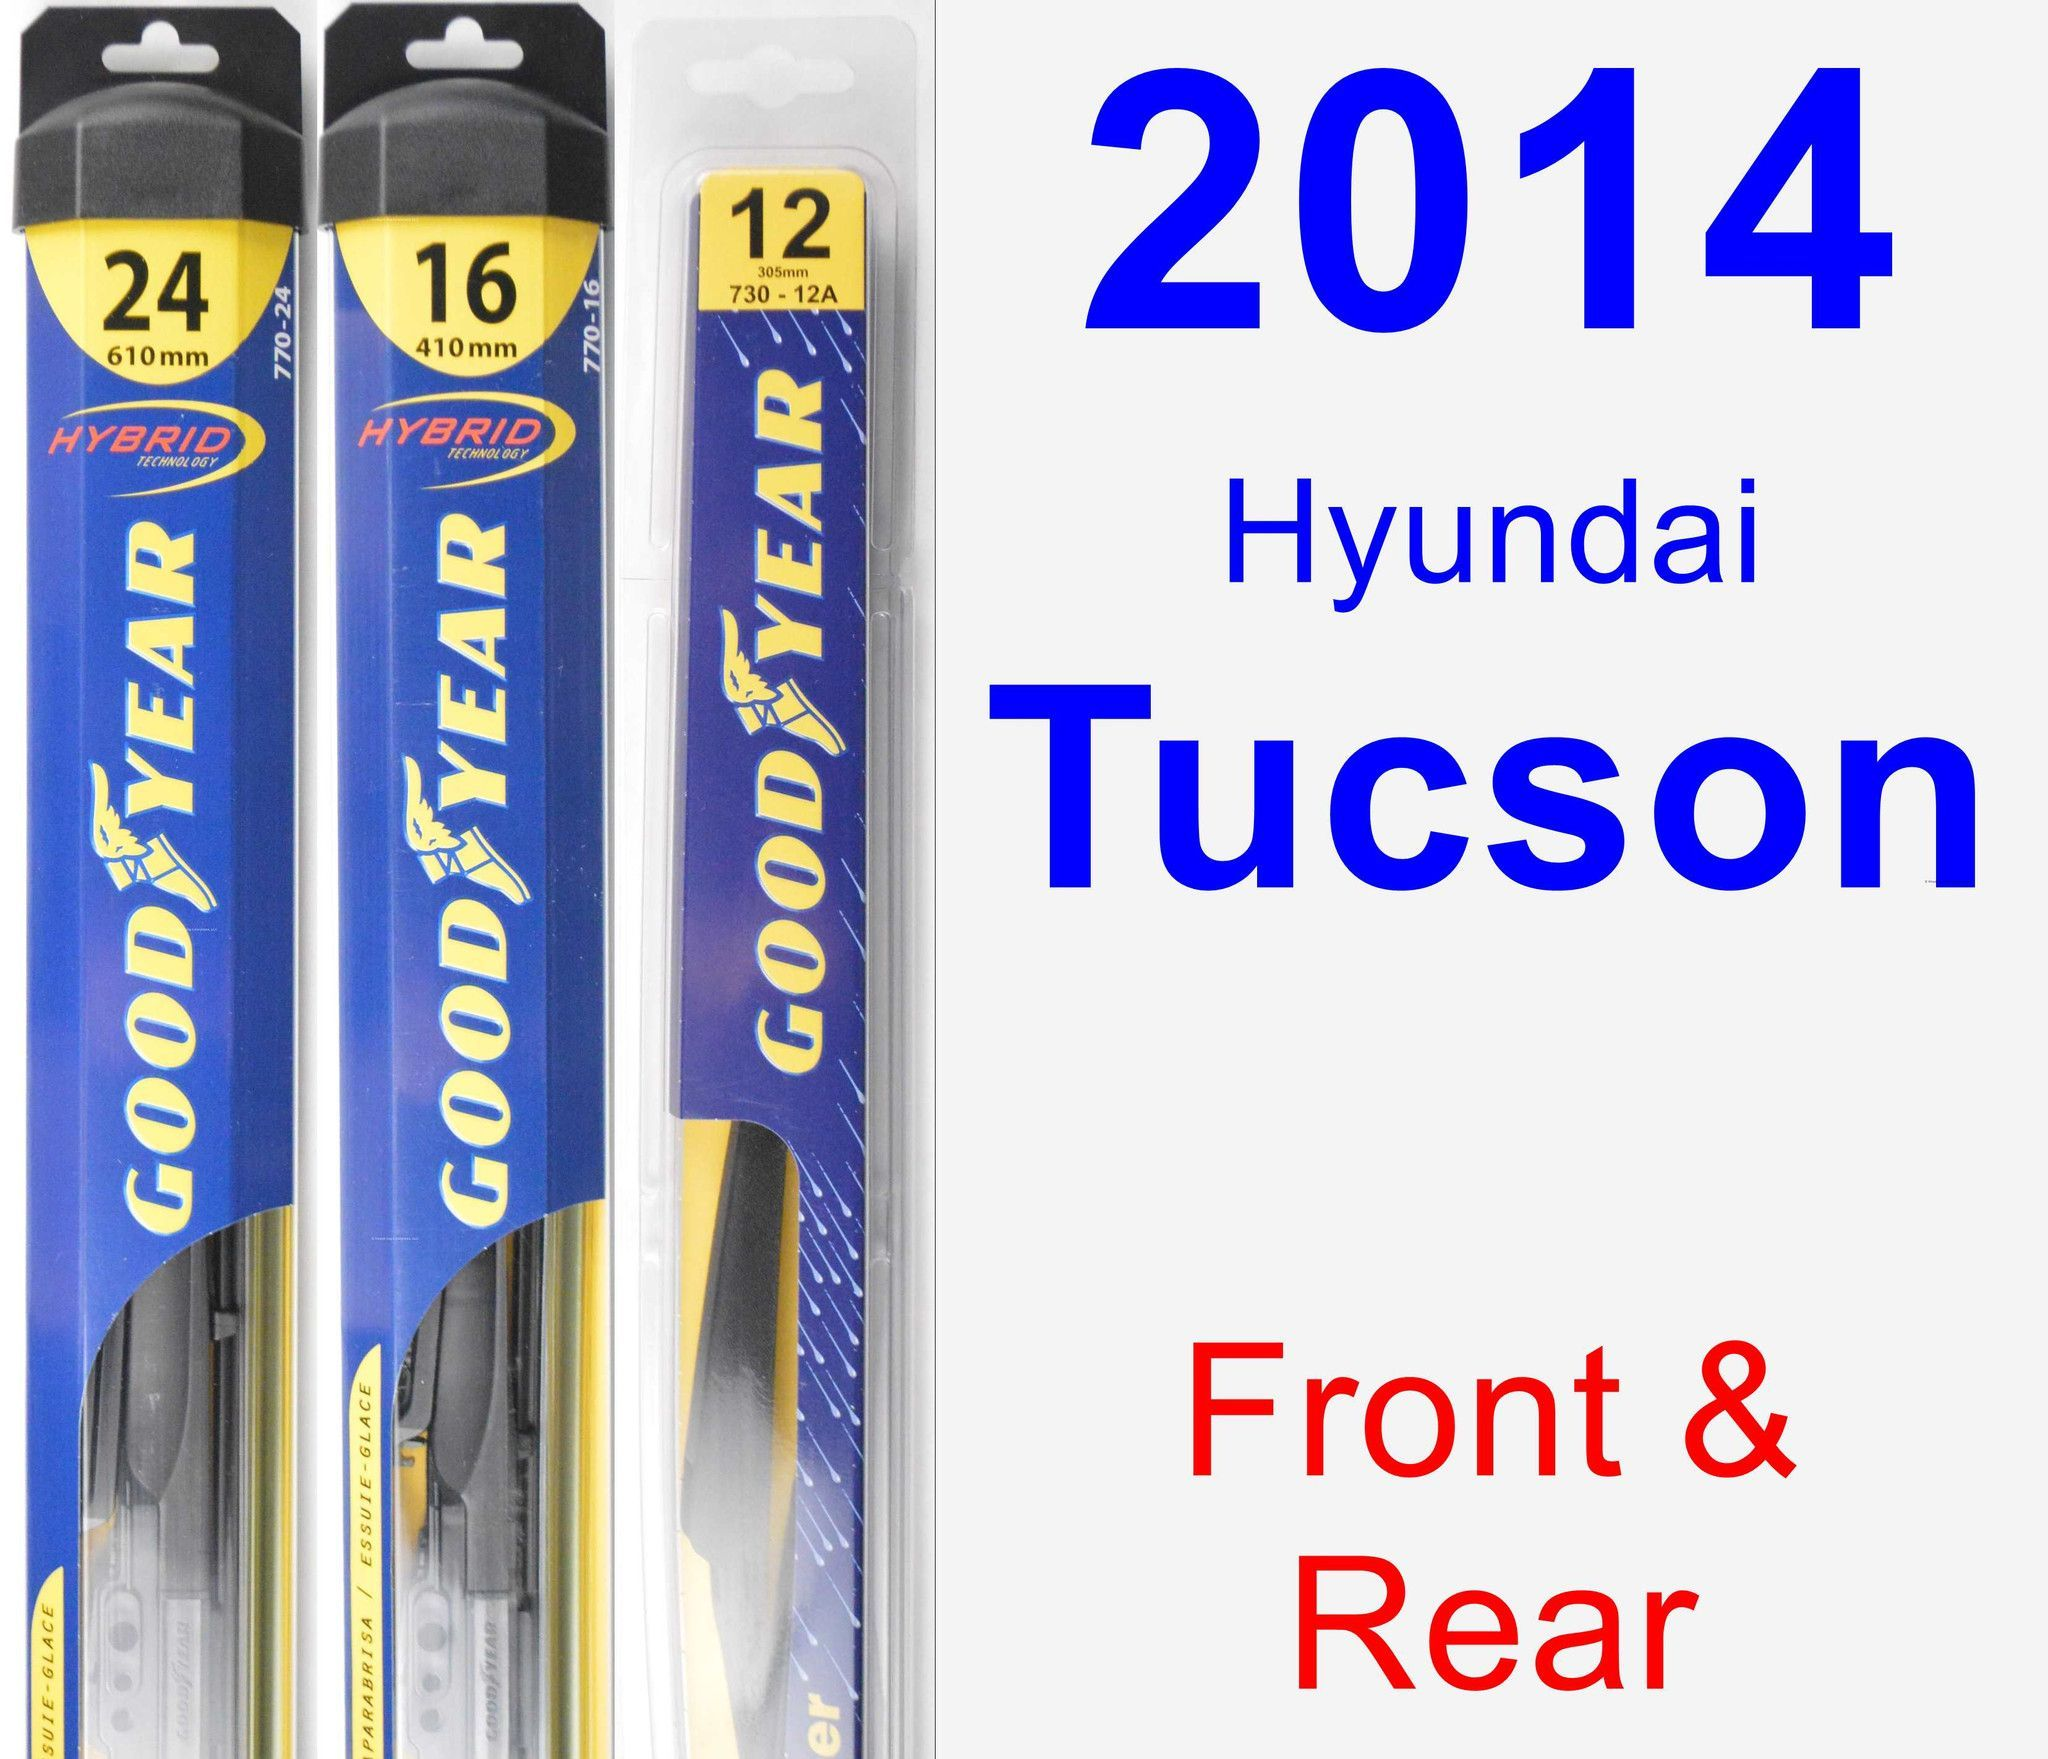 Front & Rear Wiper Blade Pack For 2014 Hyundai Tucson